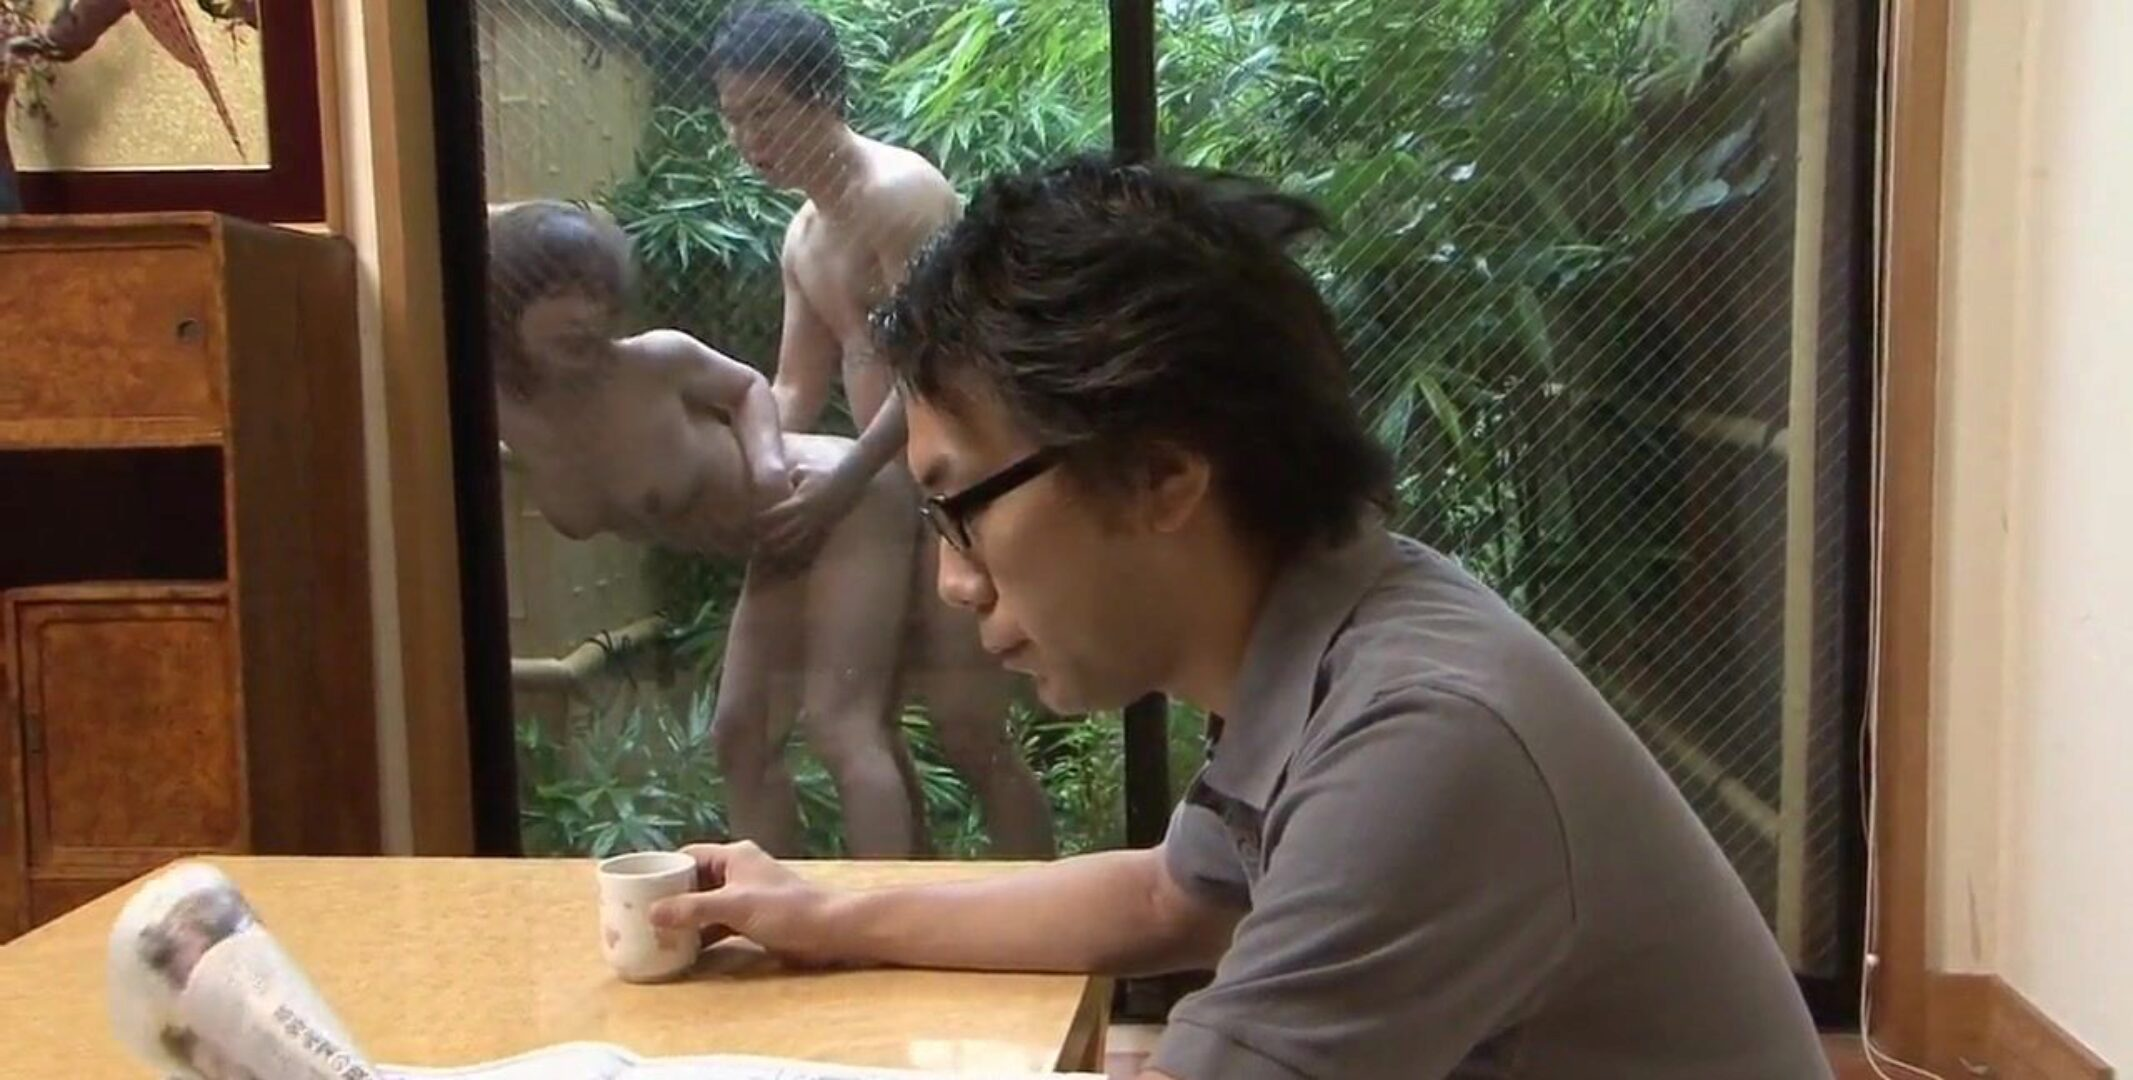 Uncensored Japanese Wife Outdoor Raw Sex with Gardener Watch Uncensored Japanese Wife Outdoor Raw Sex with Gardener movie scene on xHamster - the ultimate bevy of free Asian Japanese Ipad HD porn tube episodes